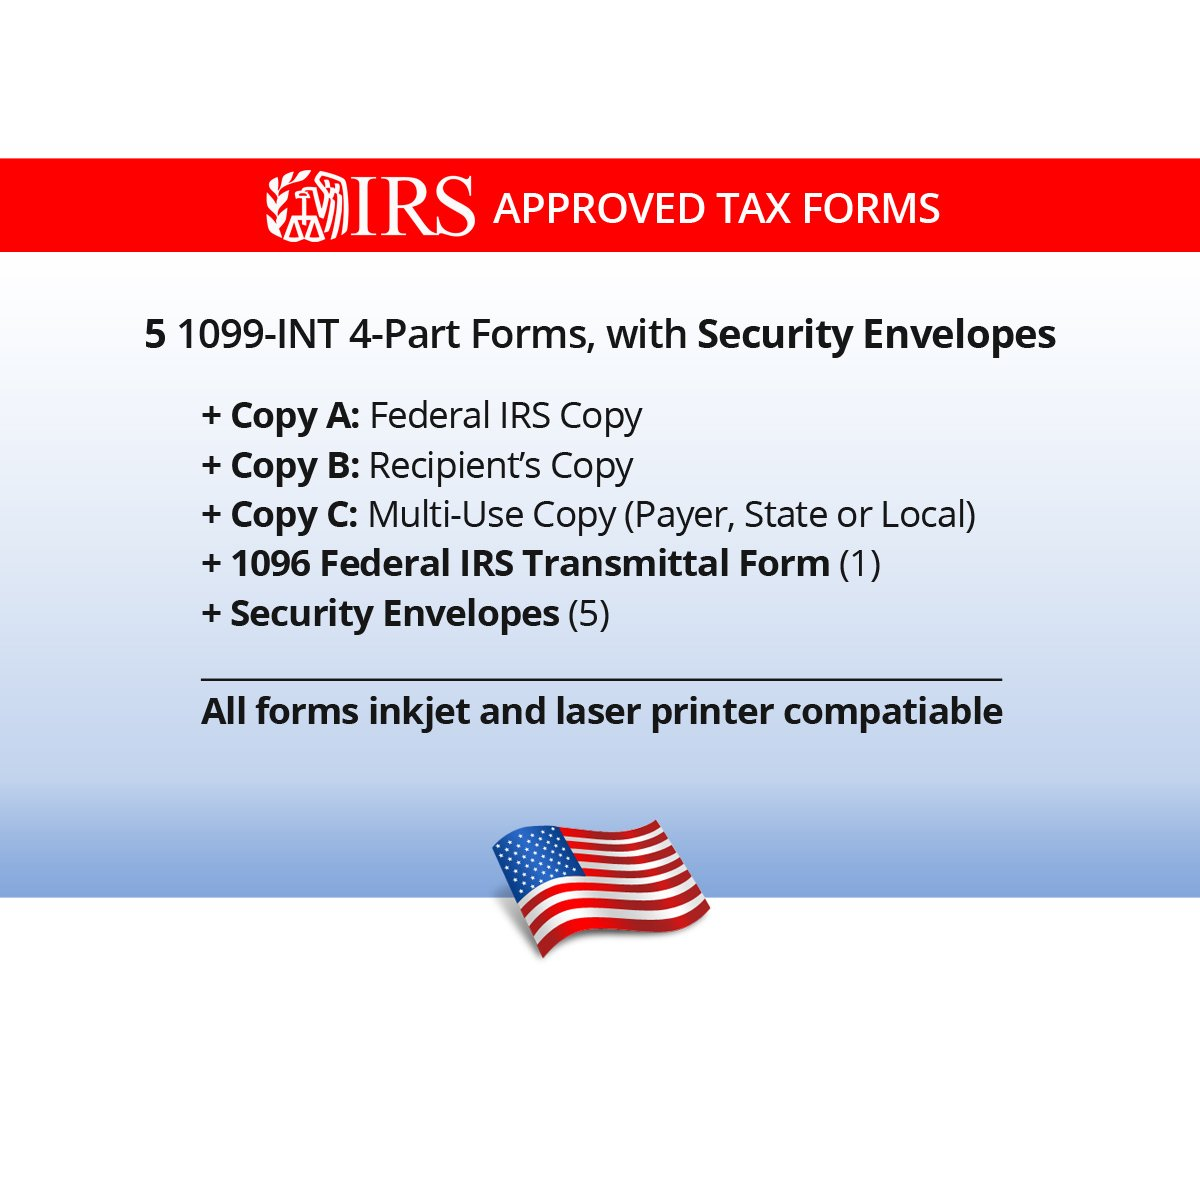 Amazon 1099 int tax forms for 2017 4 part form sets for 5 amazon 1099 int tax forms for 2017 4 part form sets for 5 vendors 1096 summary and confidential envelopes 5 office products falaconquin